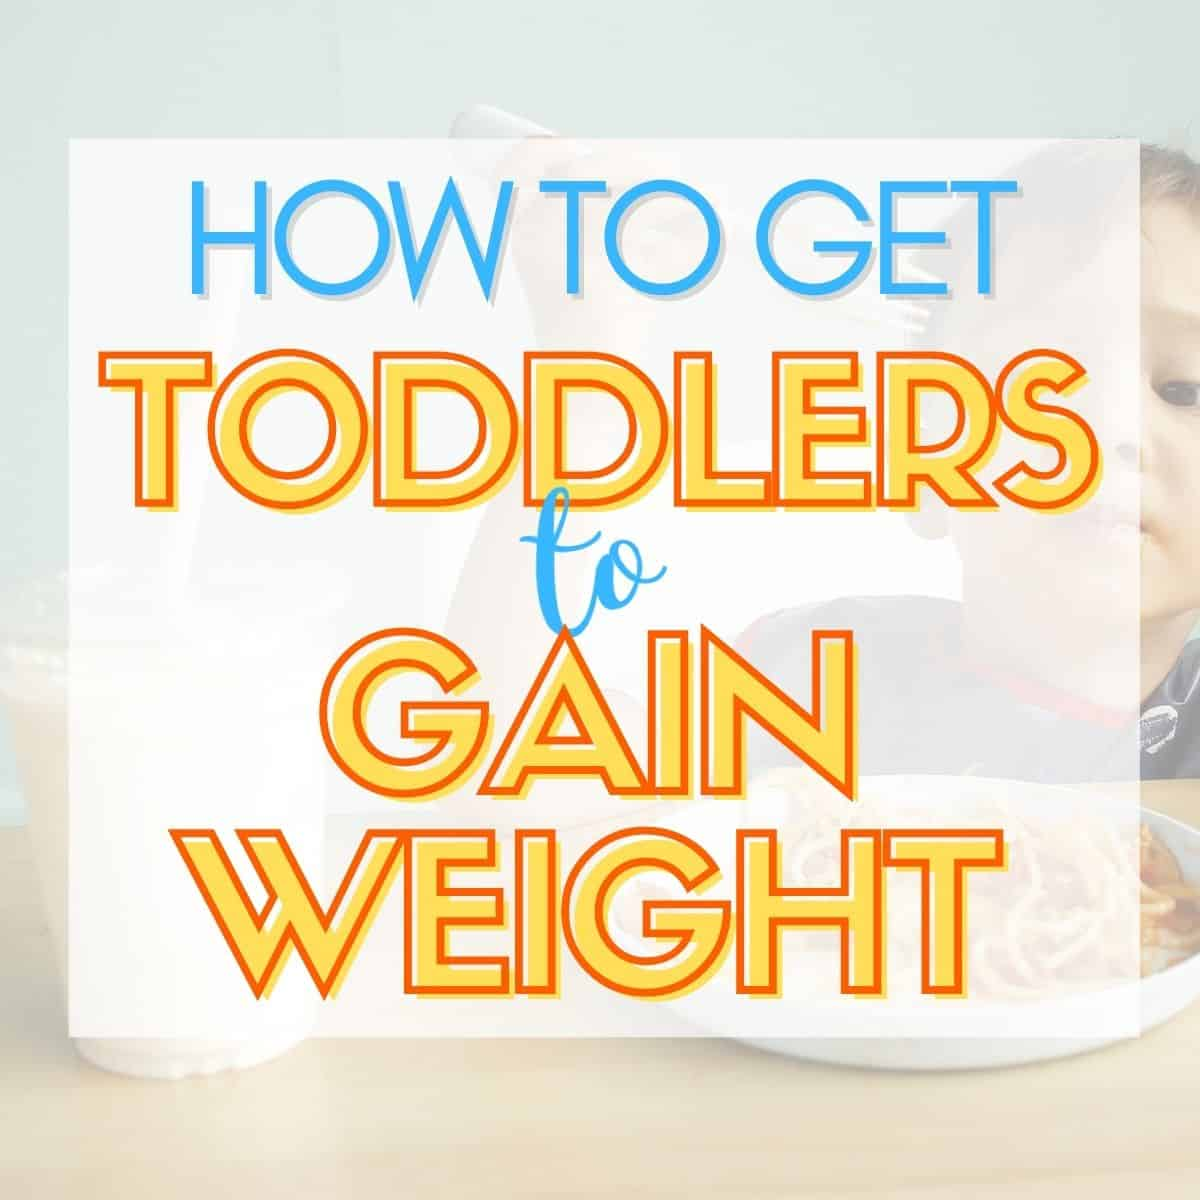 Graphic of tips for weight gain for toddlers.